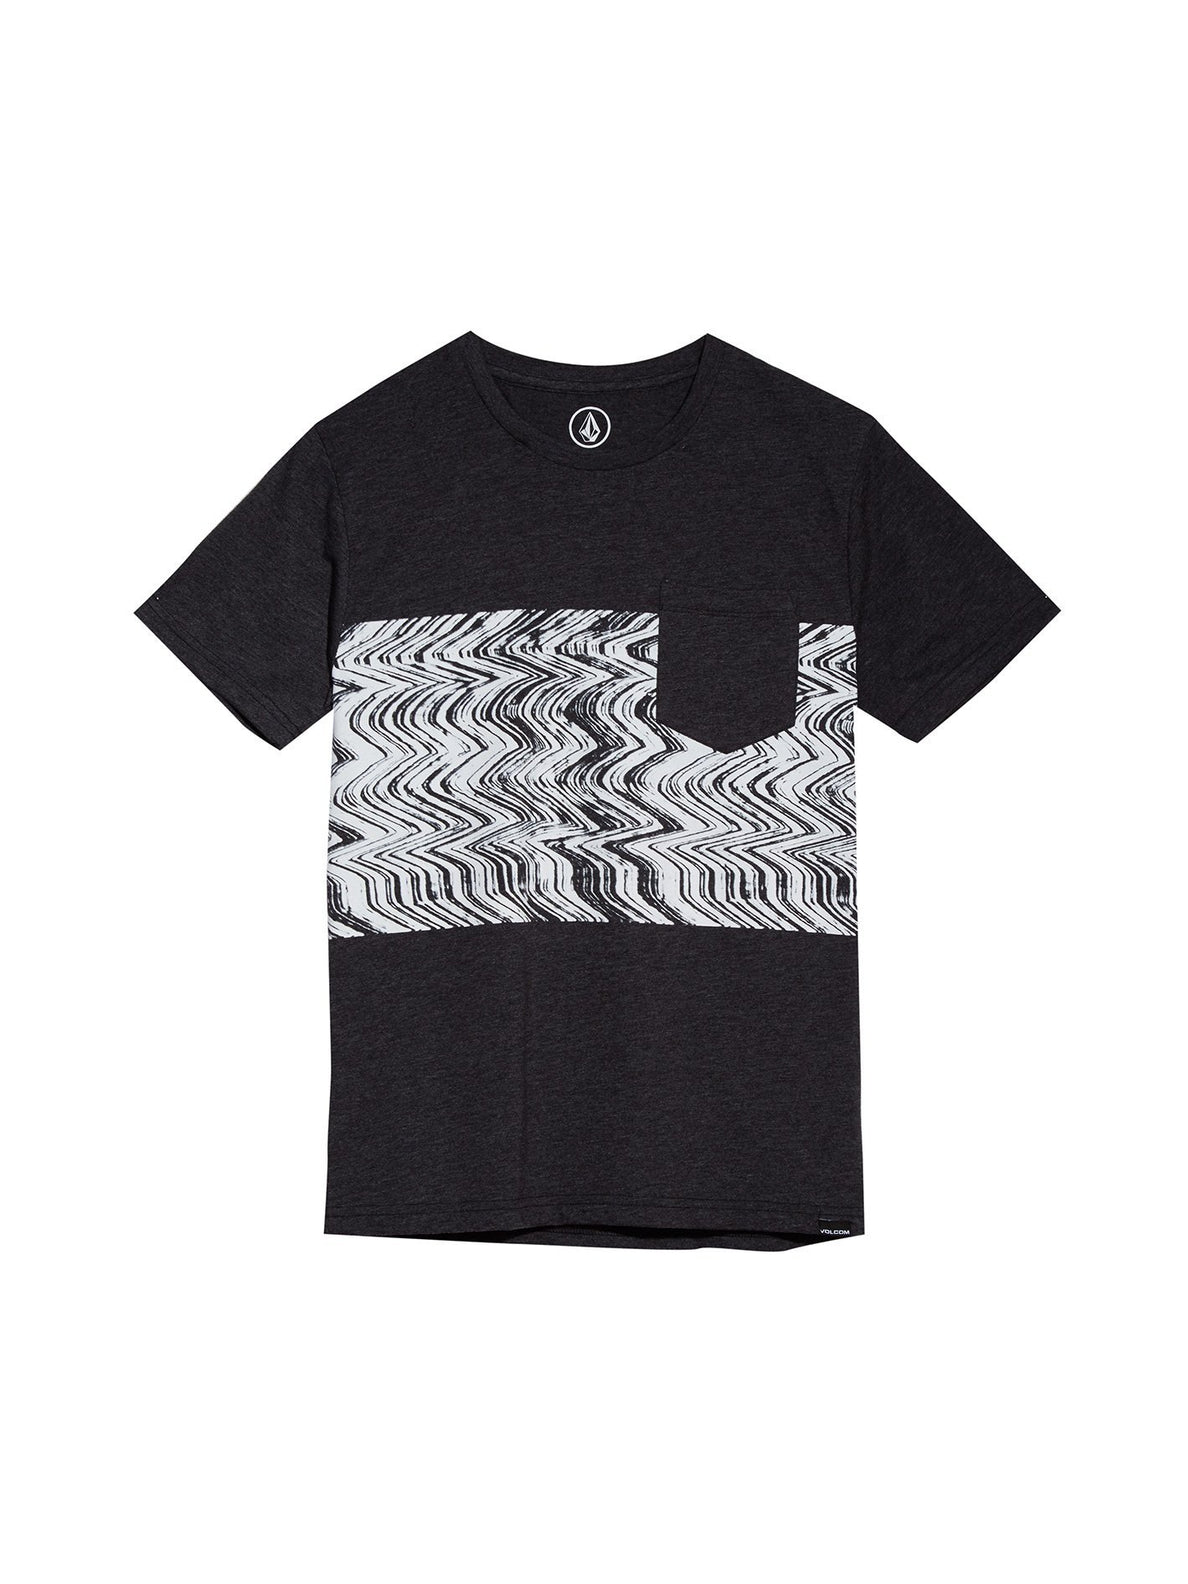 Lofi Short Sleeve Tee - Heather Black (Niňo)